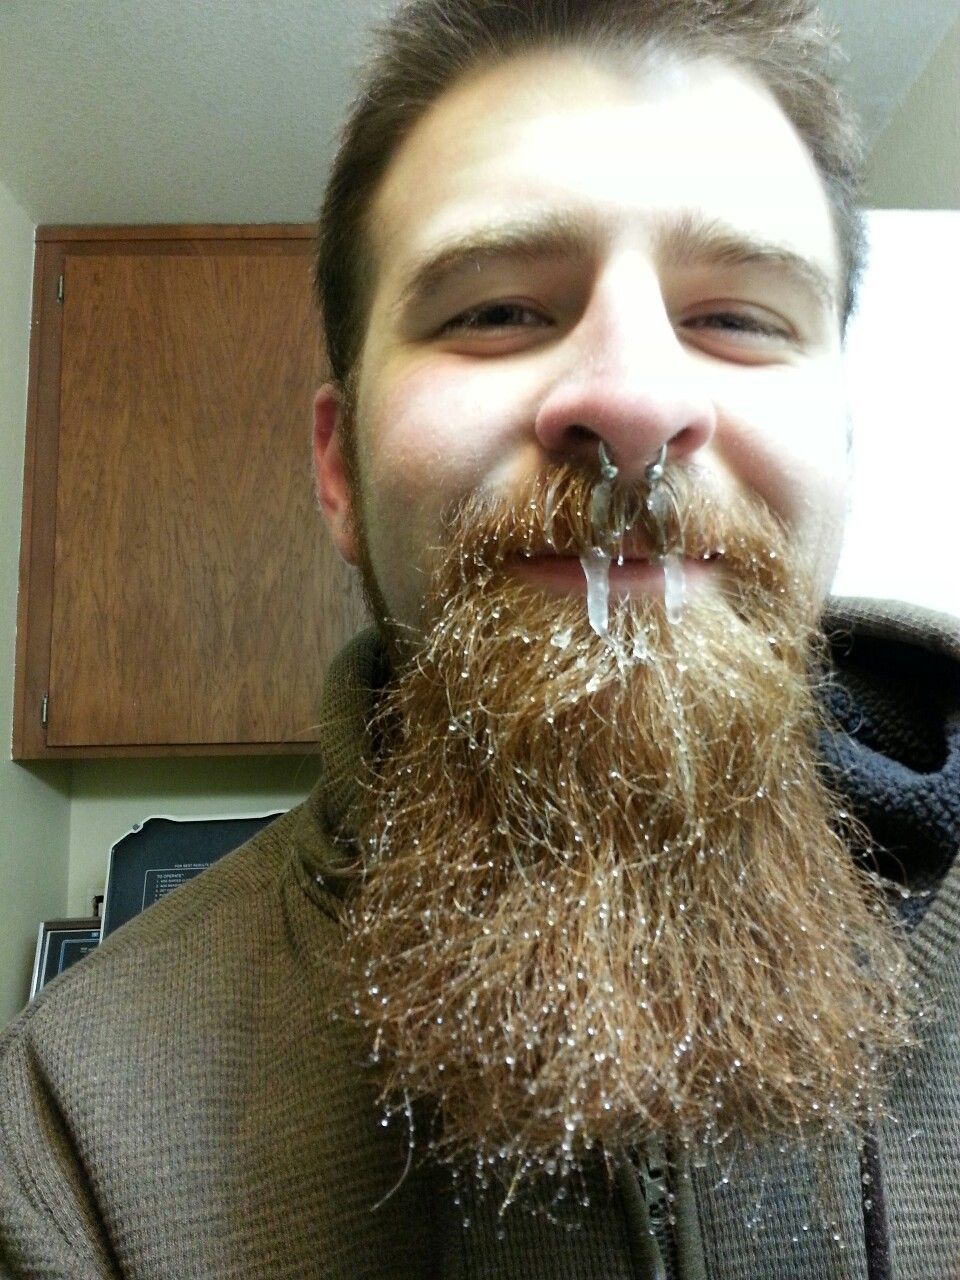 2018-06-04 05:23:12 - thedudewhosadude the moment i stepped inside my beardburnme https://www.neofic.com